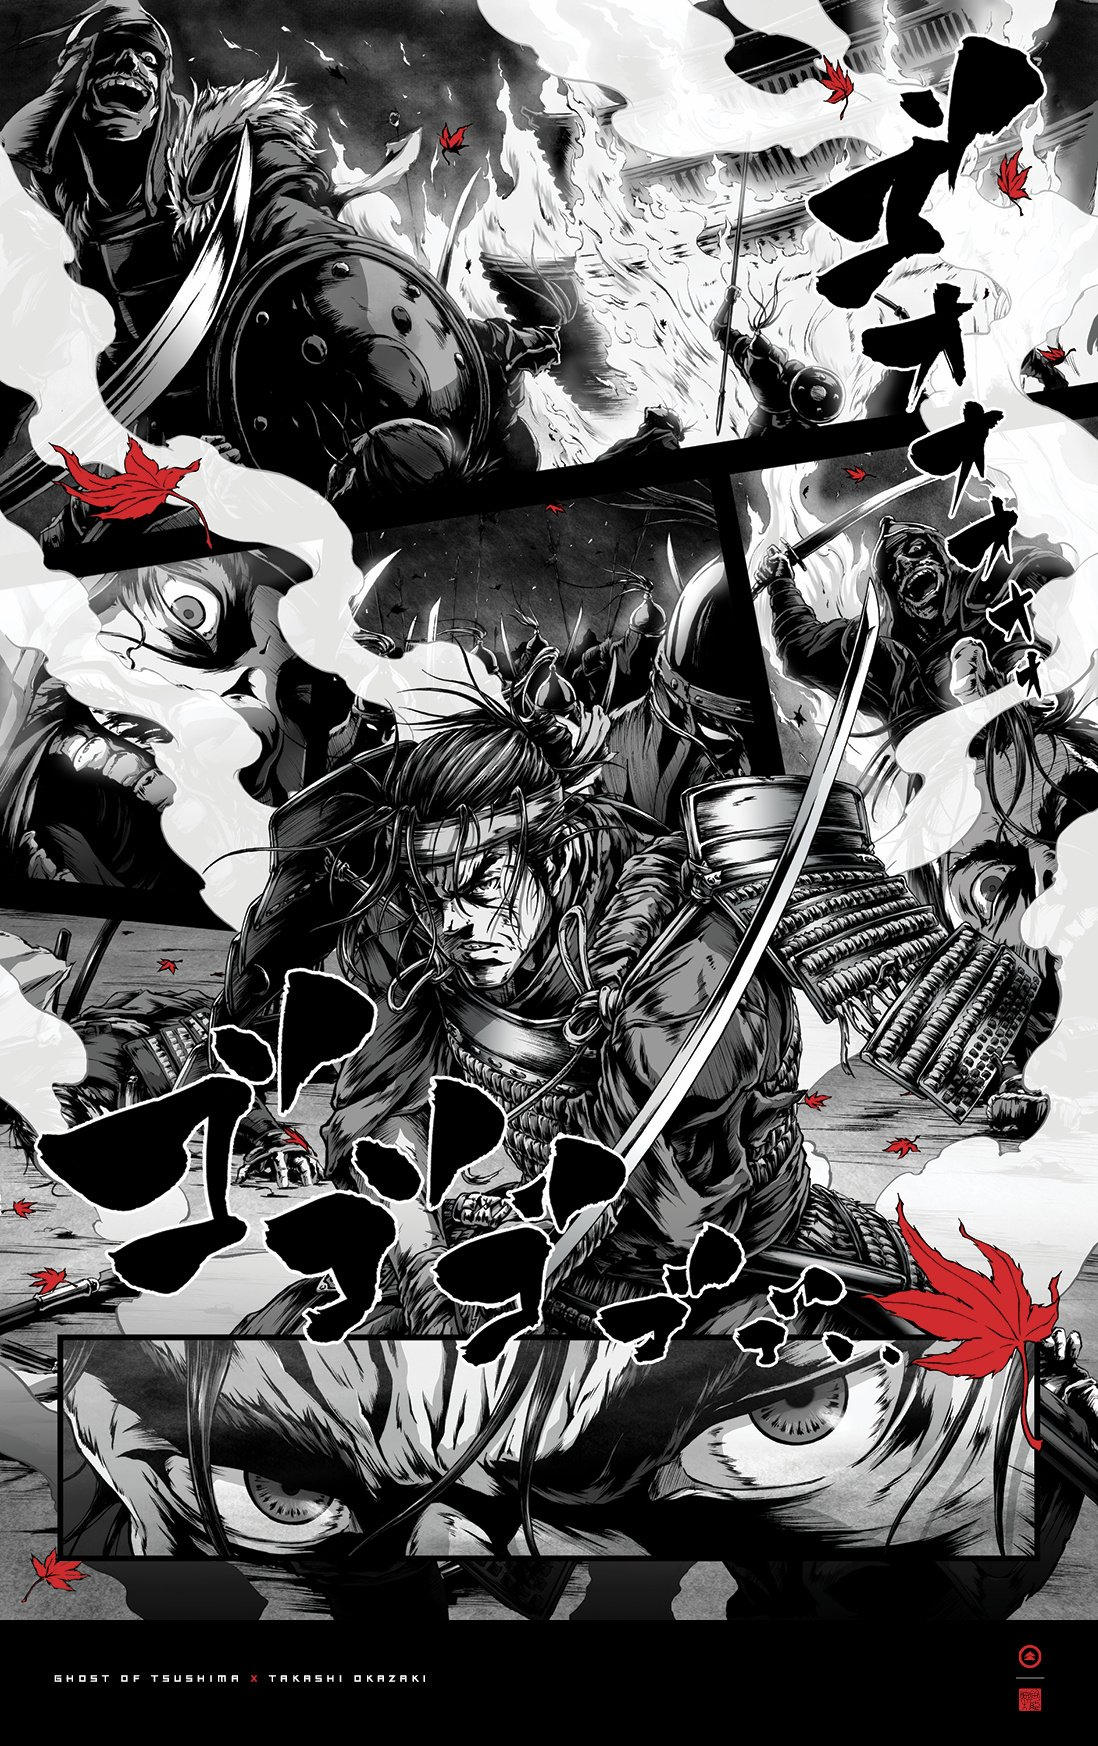 Ghost of Tsushima Manga Posters Are Utterly Jaw-Dropping ...Ghost Of Tsushima